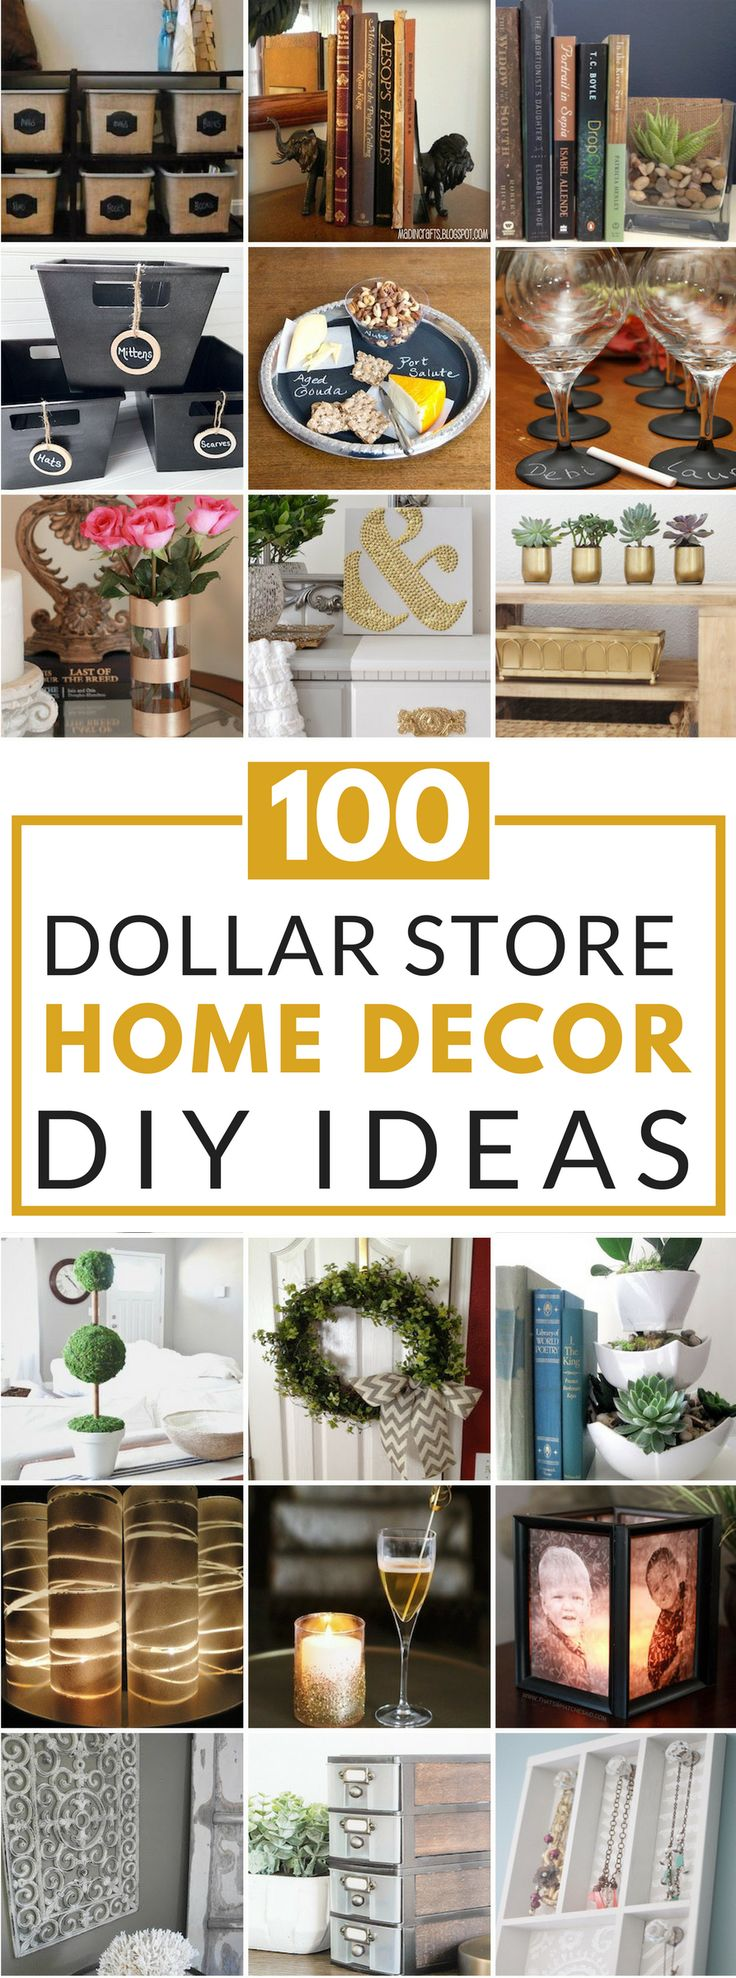 Kitchen Store In House Top 25 Best Dollar Store Hacks Ideas On Pinterest  Dollar Store